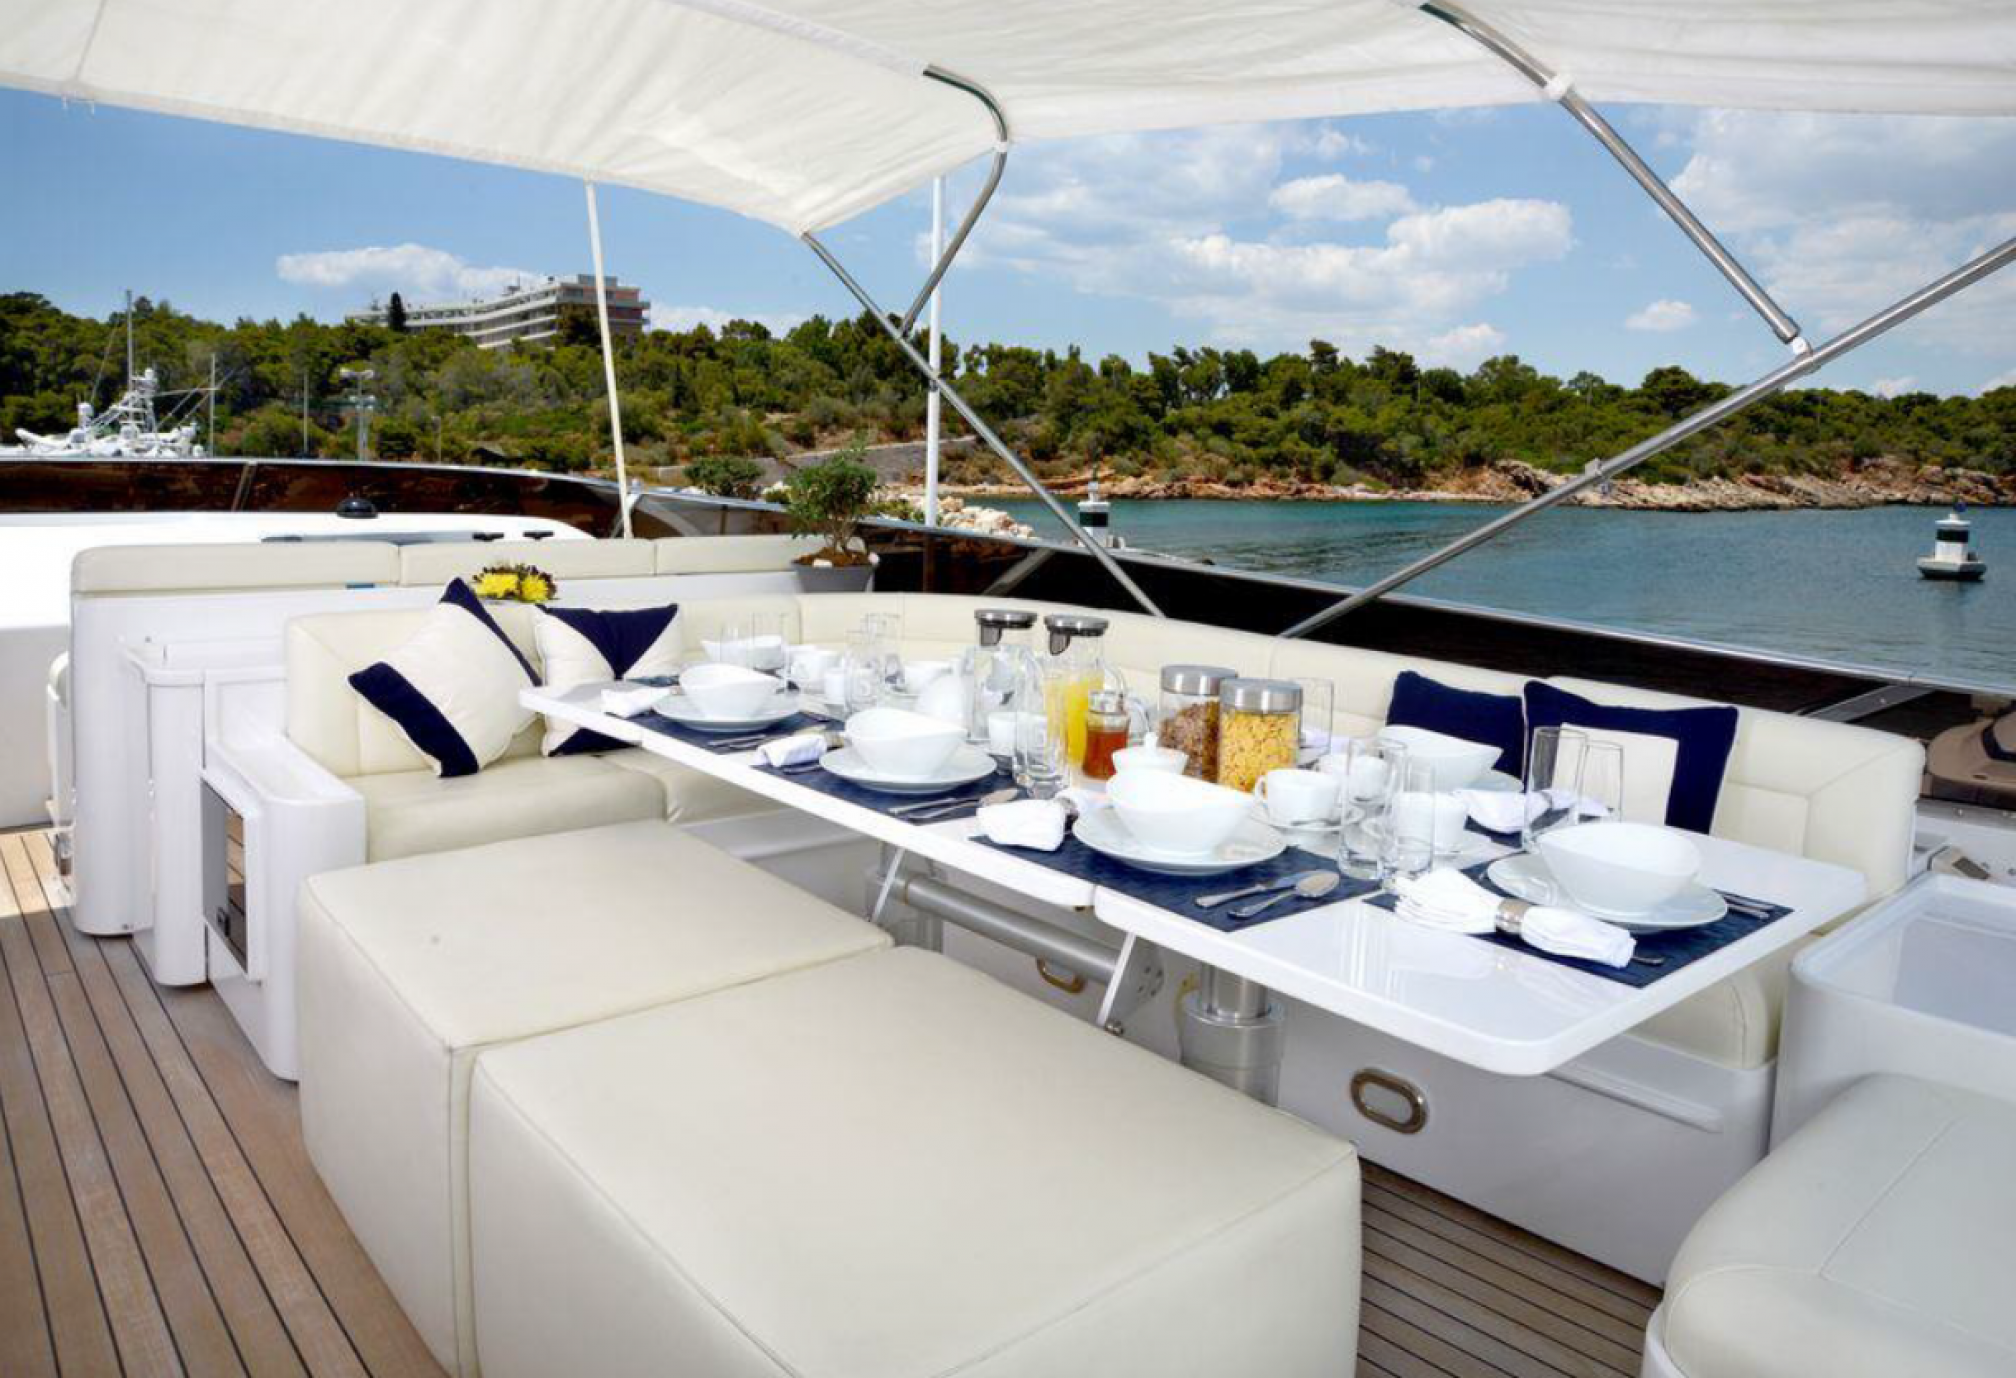 Rental yacht Zoi outdoors